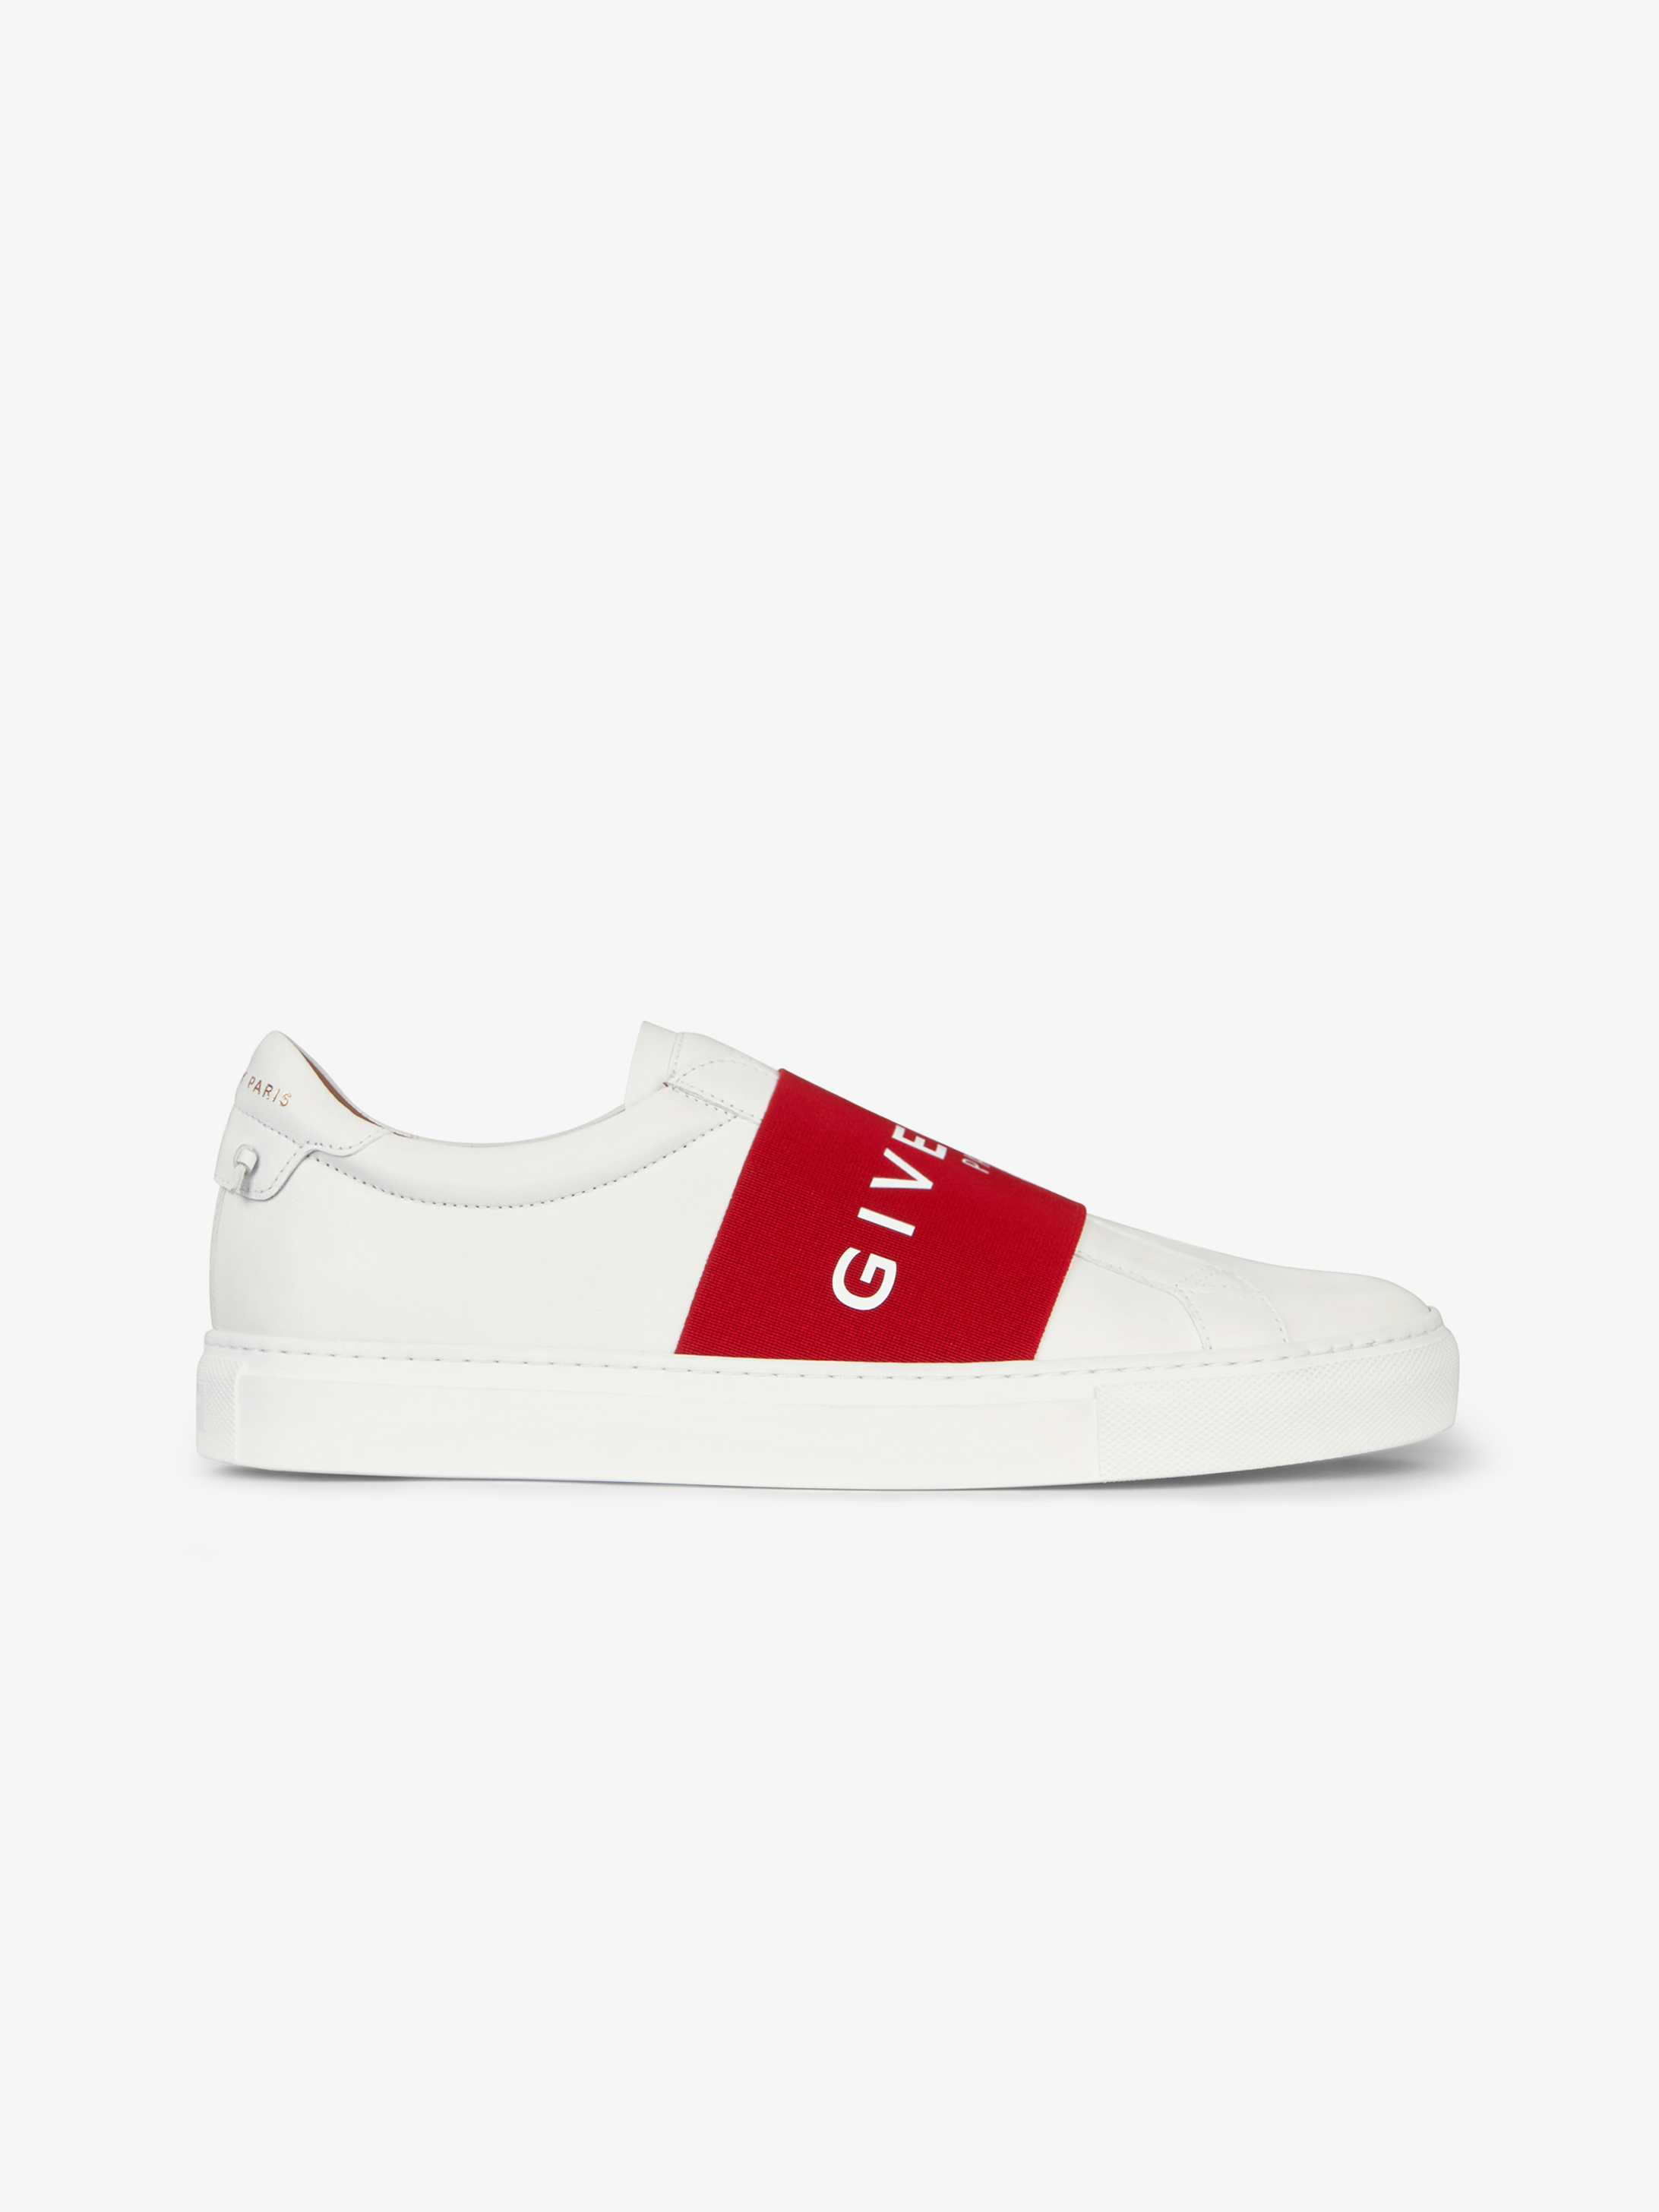 GIVENCHY PARIS webbing sneakers in